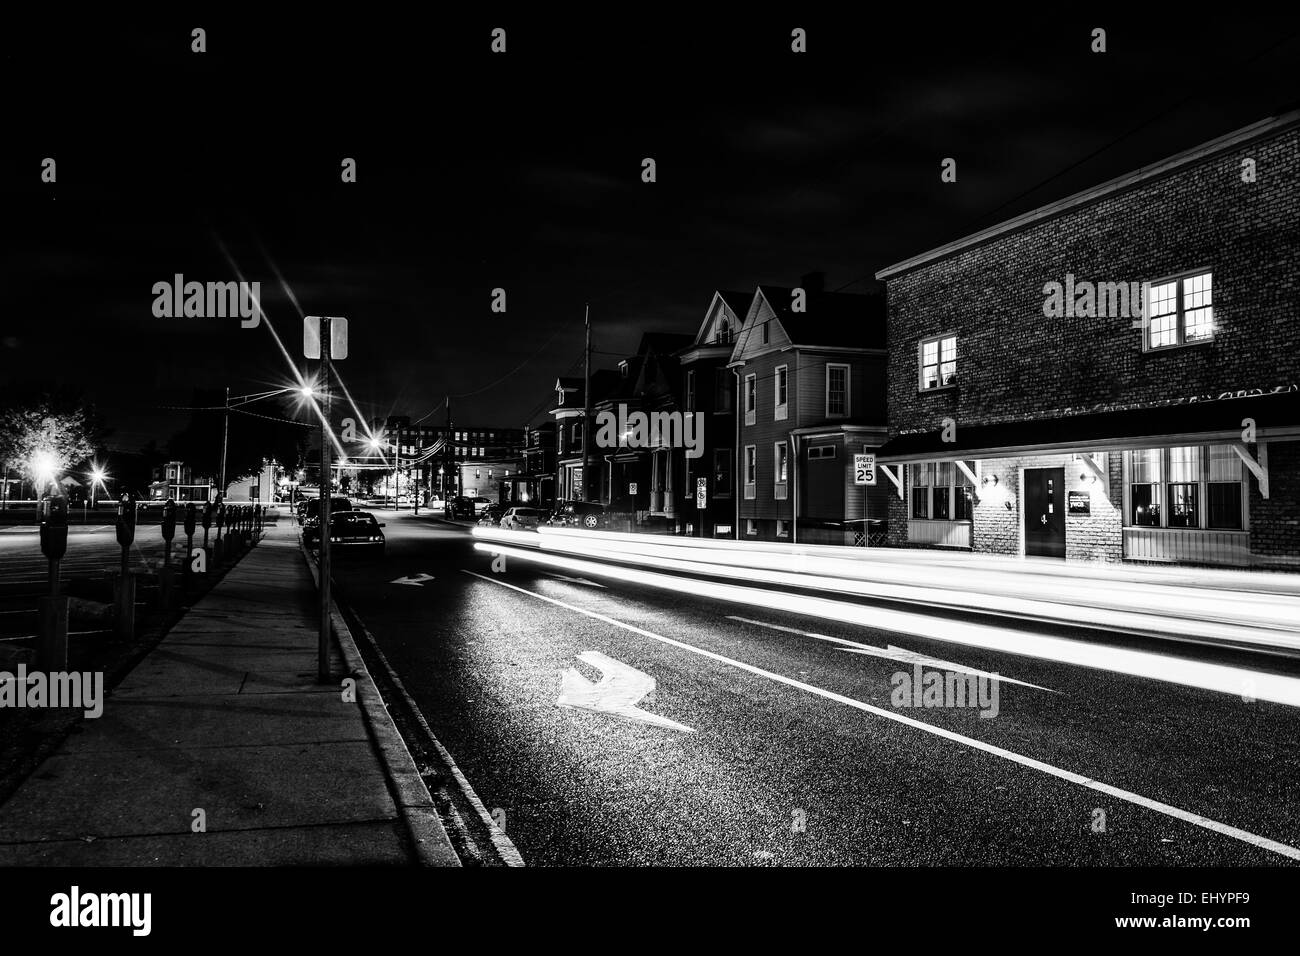 Light trails on a street at night in Hanover, Pennsylvania. - Stock Image